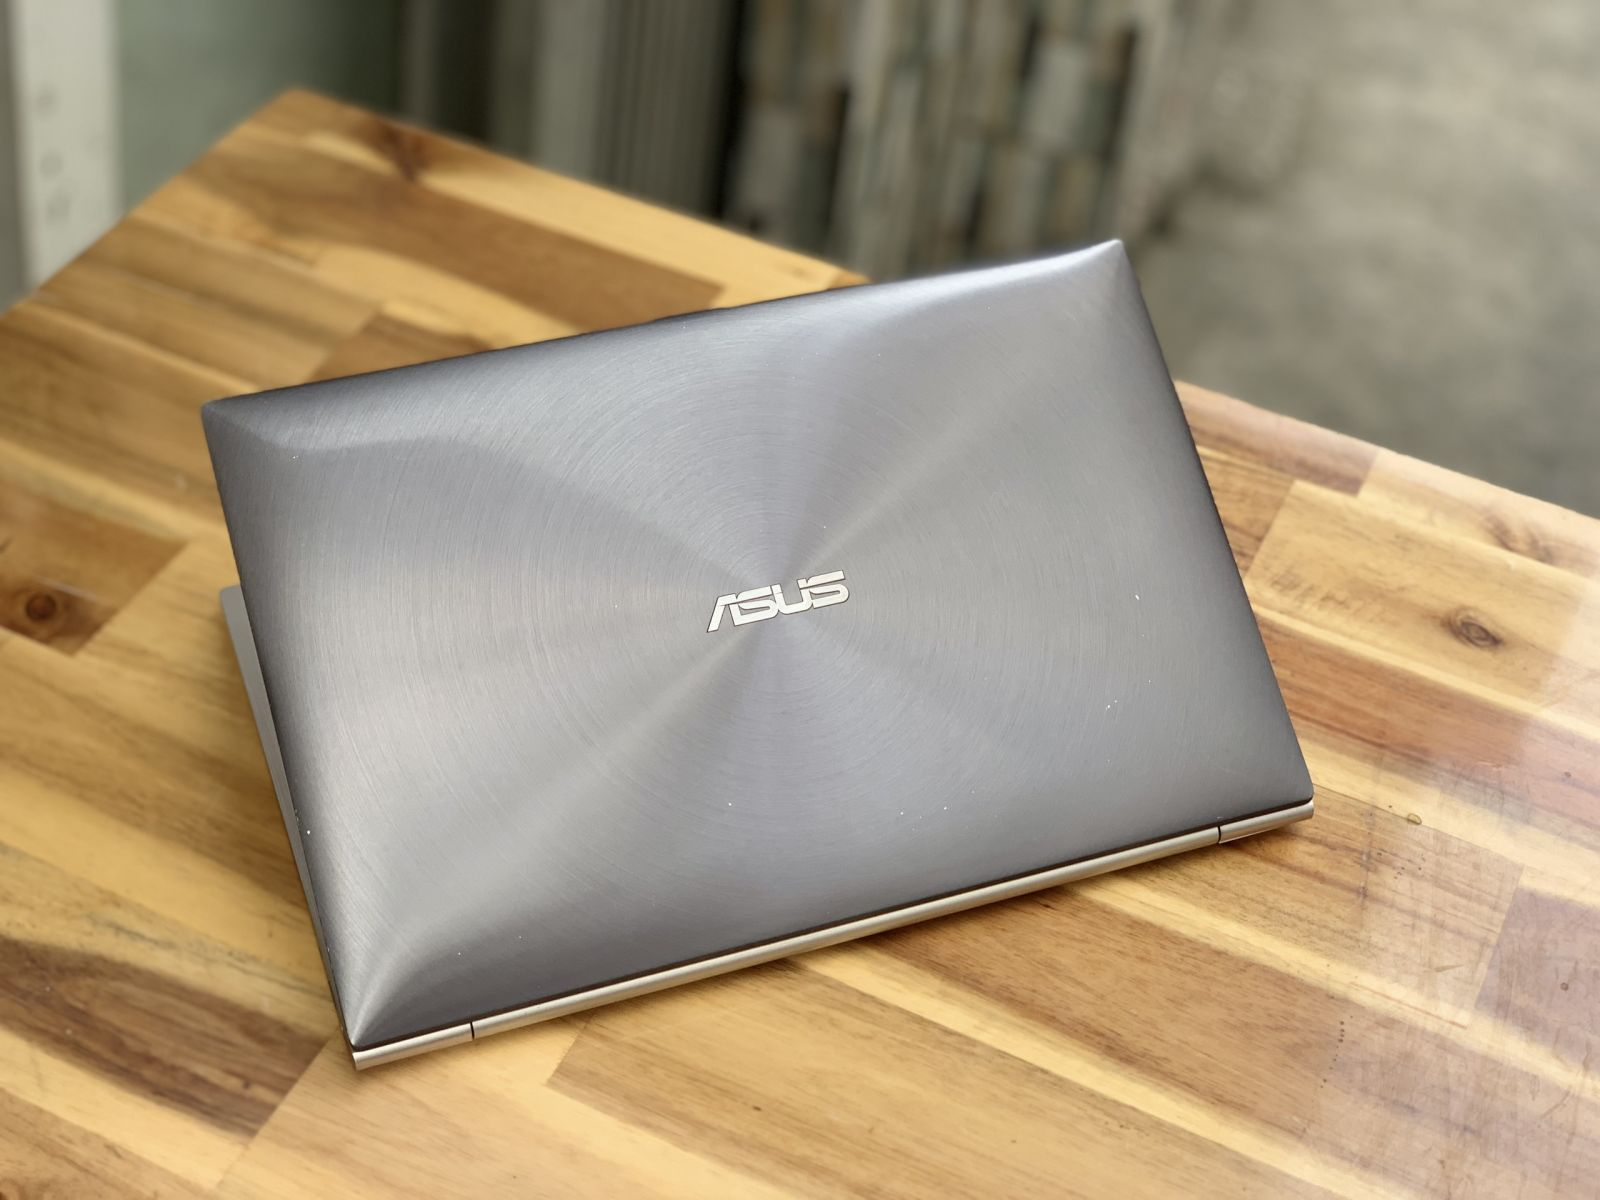 Laptop Asus Zenbook UX21E/ i5 2467M/ 4G/ SSD256/ 12in/ Giá rẻ4